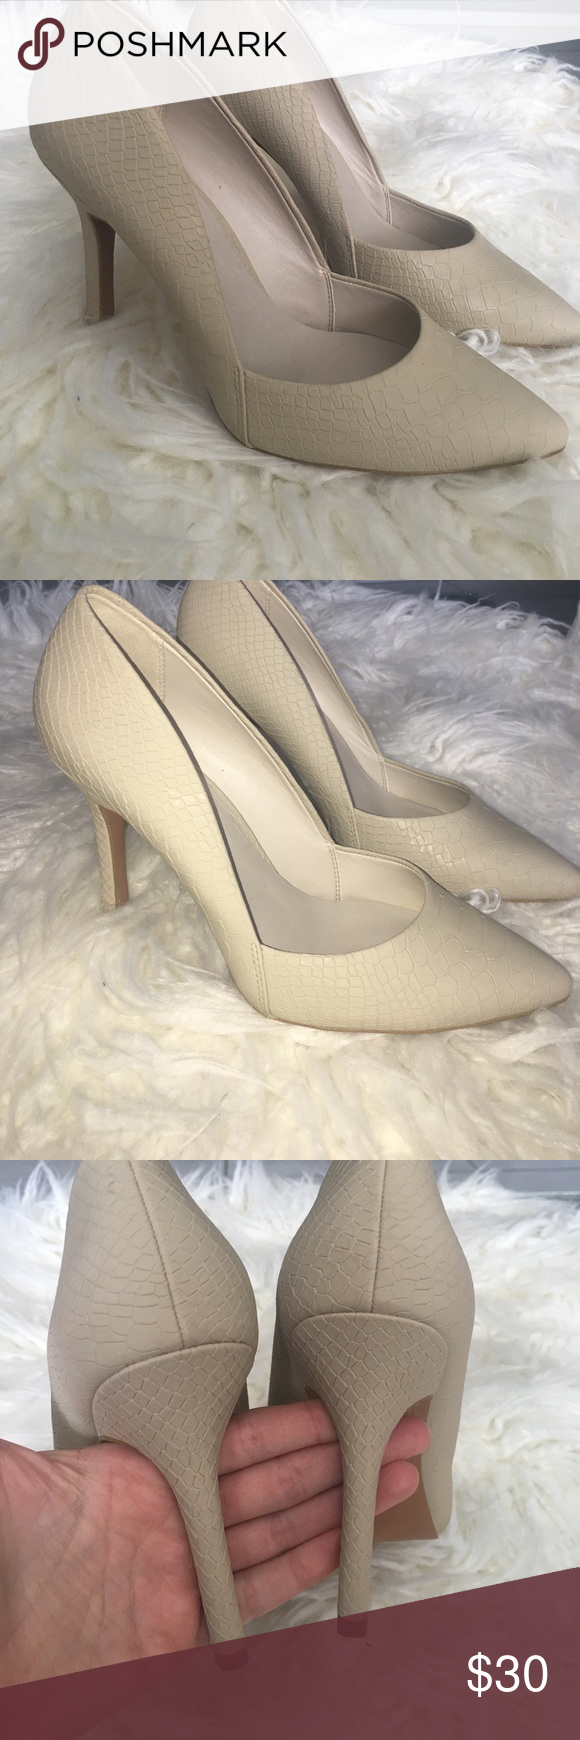 Aldo Sand Cream Snake Print Stiletto Pumps Heel Excellent Condition with no flaws. Like new Aldo Shoes Heels